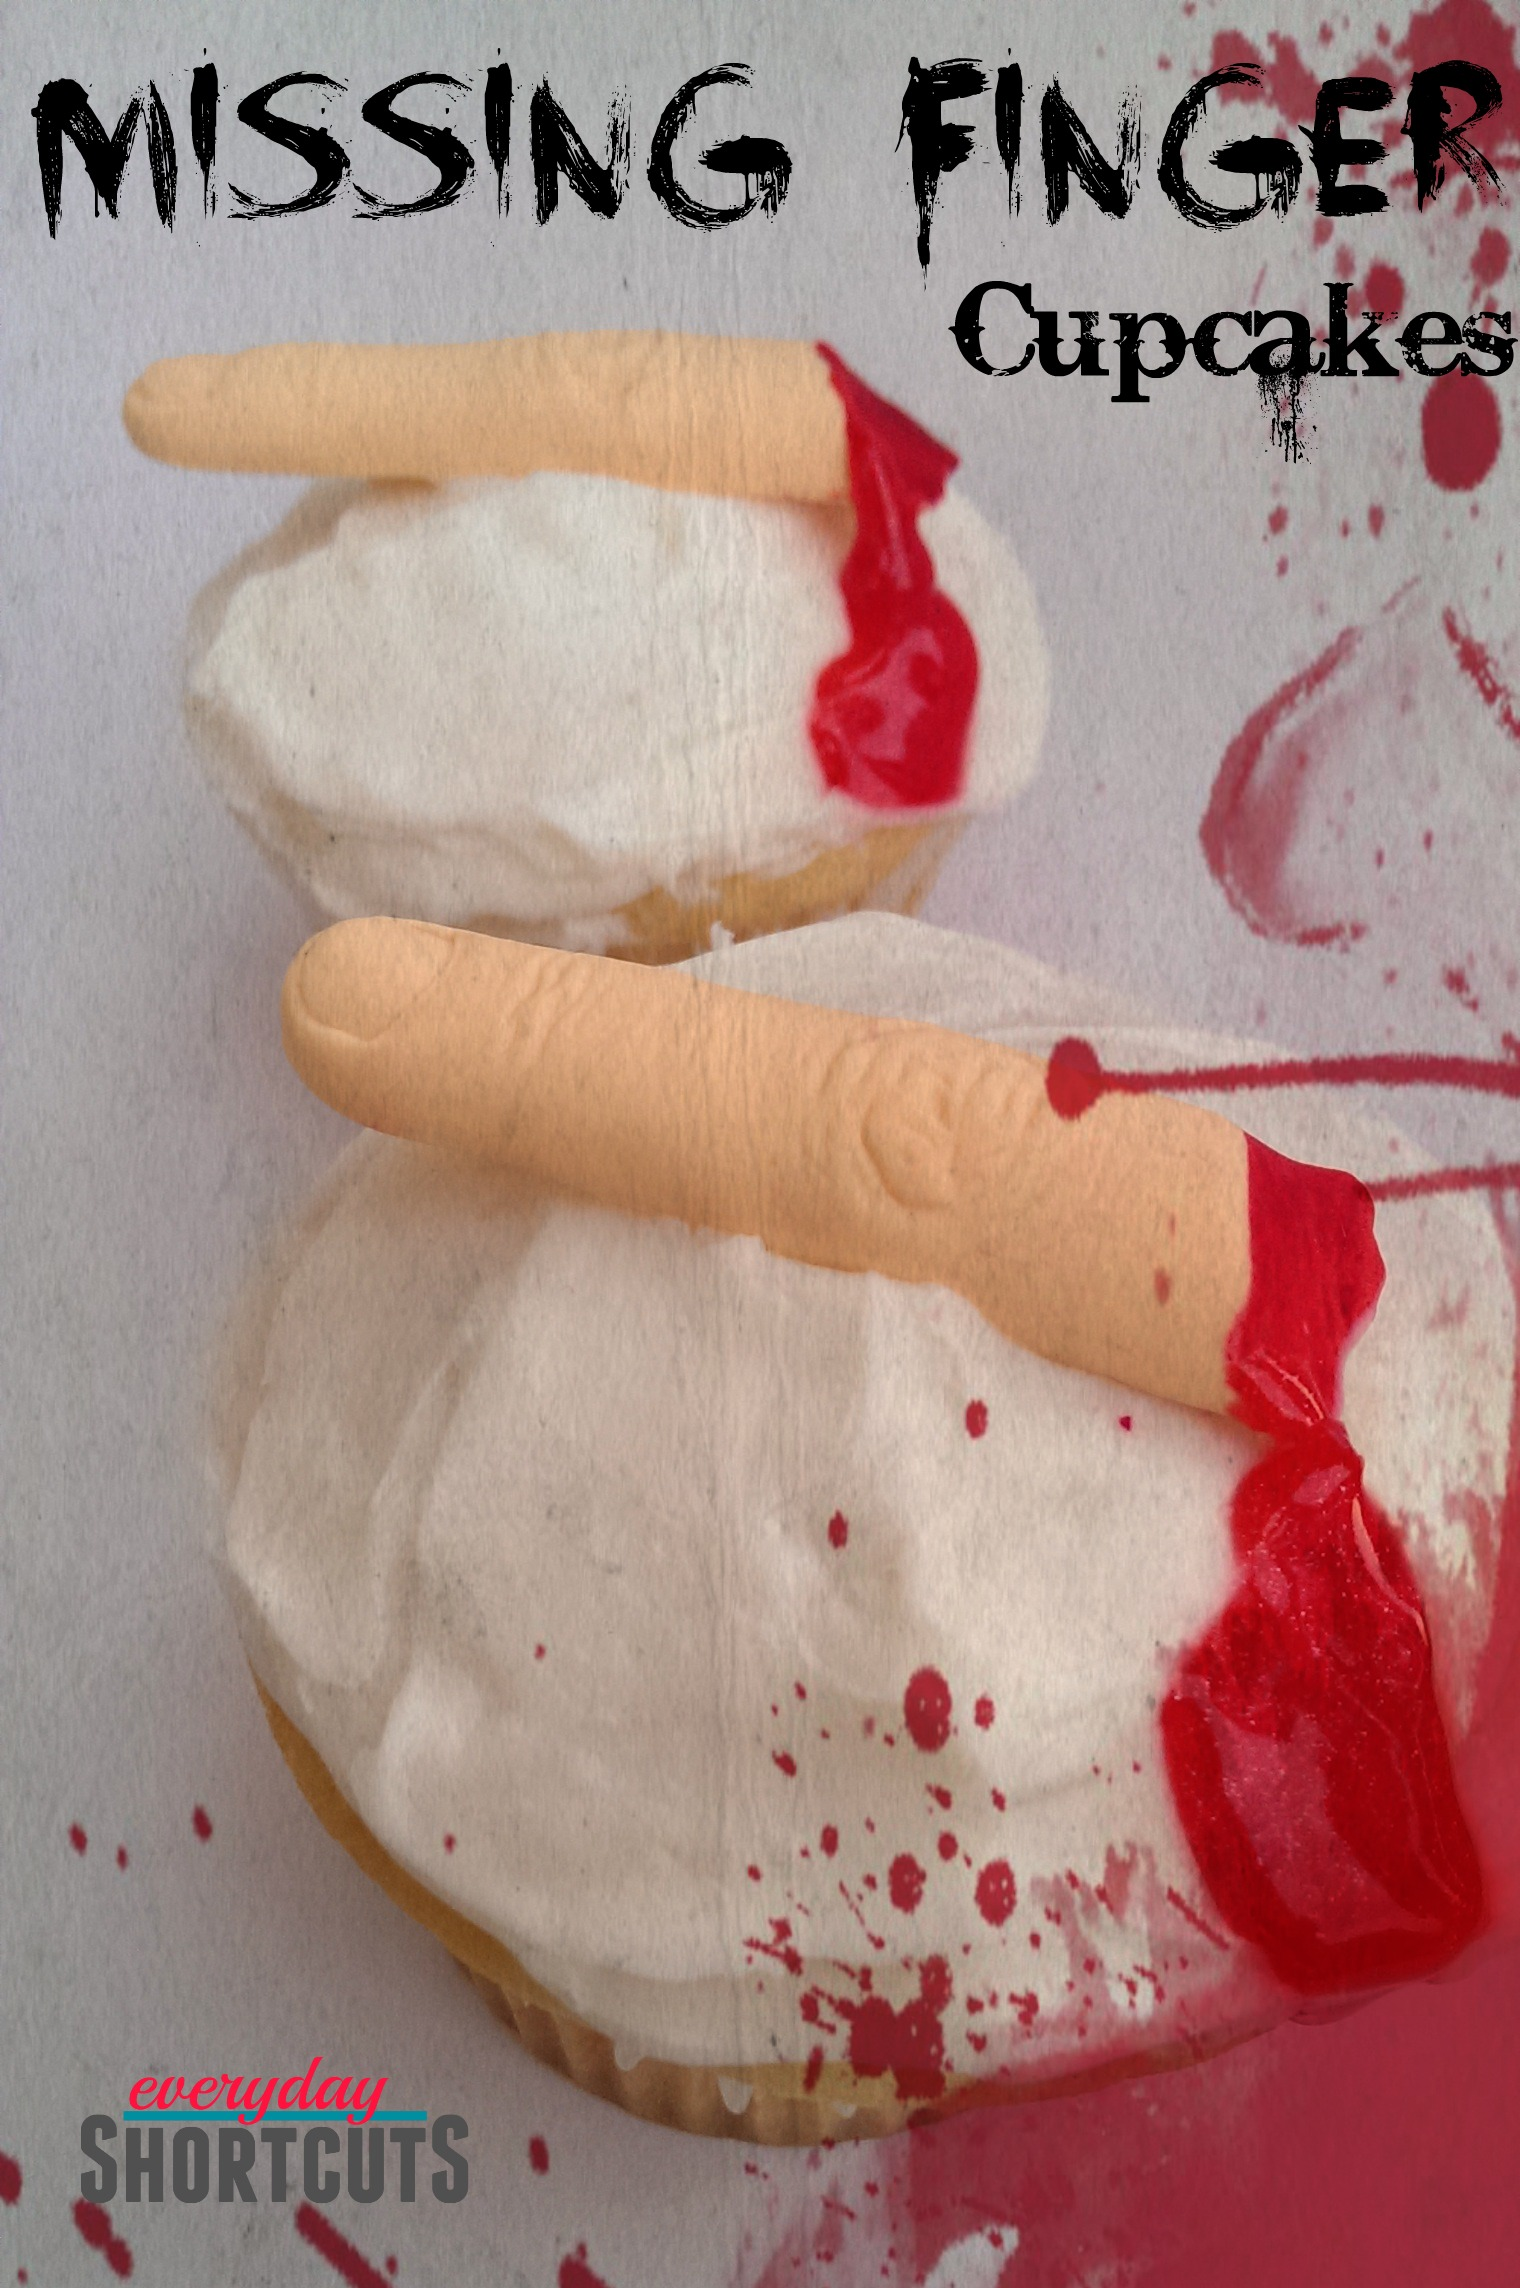 missing finger cupcakes